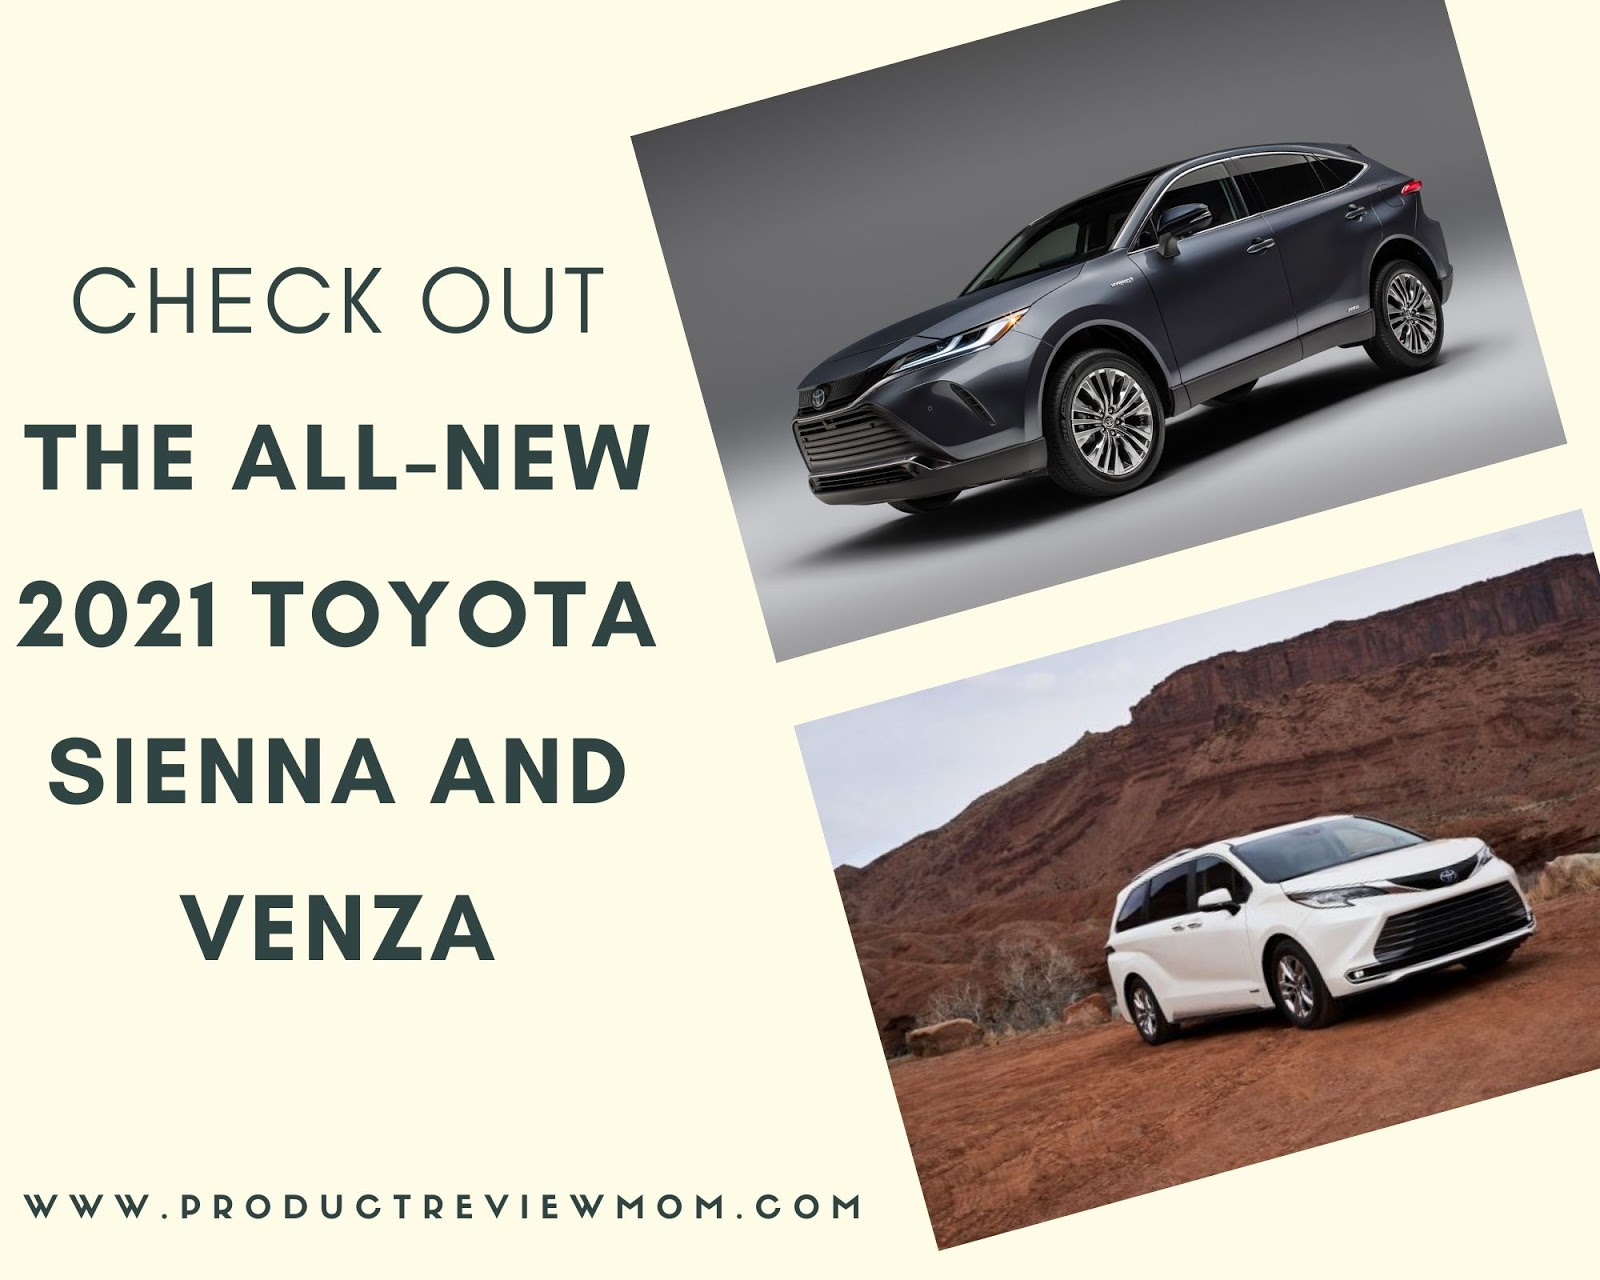 Check Out the All-New 2021 Toyota Sienna and Venza